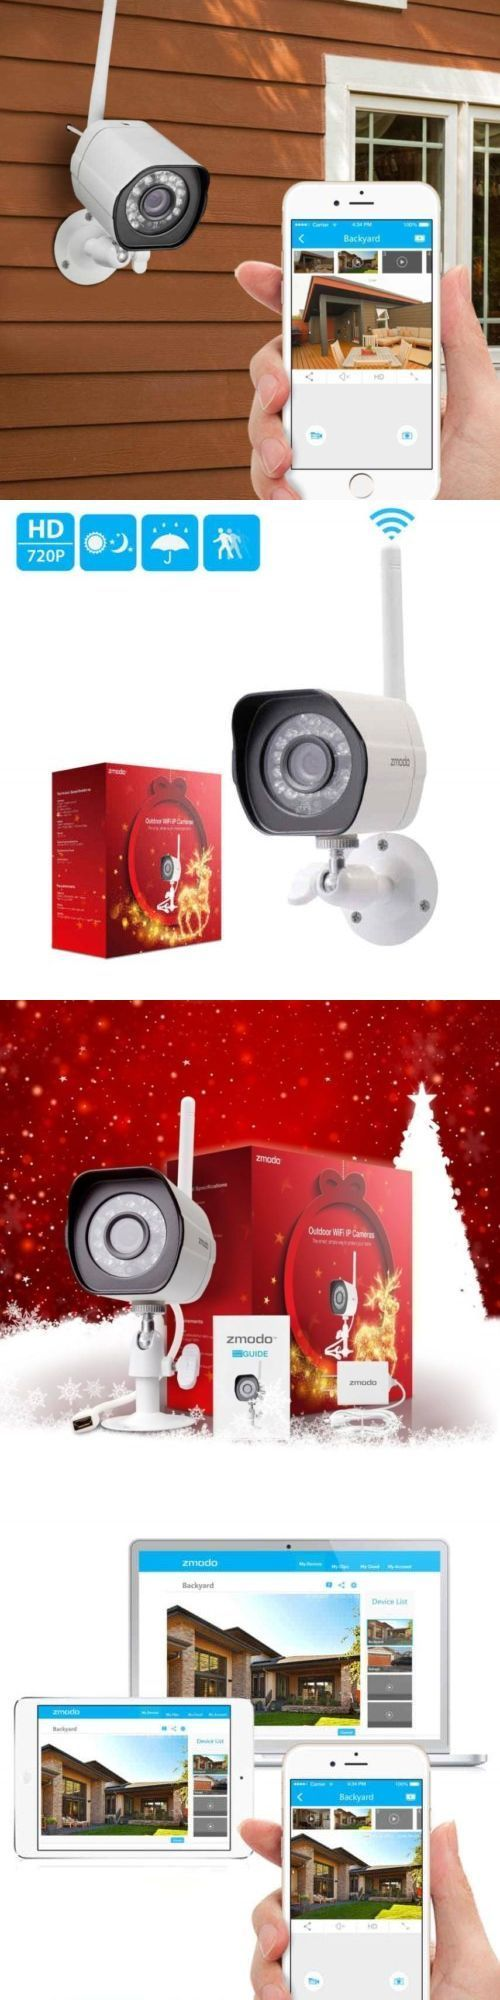 Security Cameras: Zmodo 720P Hd Outdoor Home Wireless Security Surveillance Video Camera System BUY IT NOW ONLY: $47.53